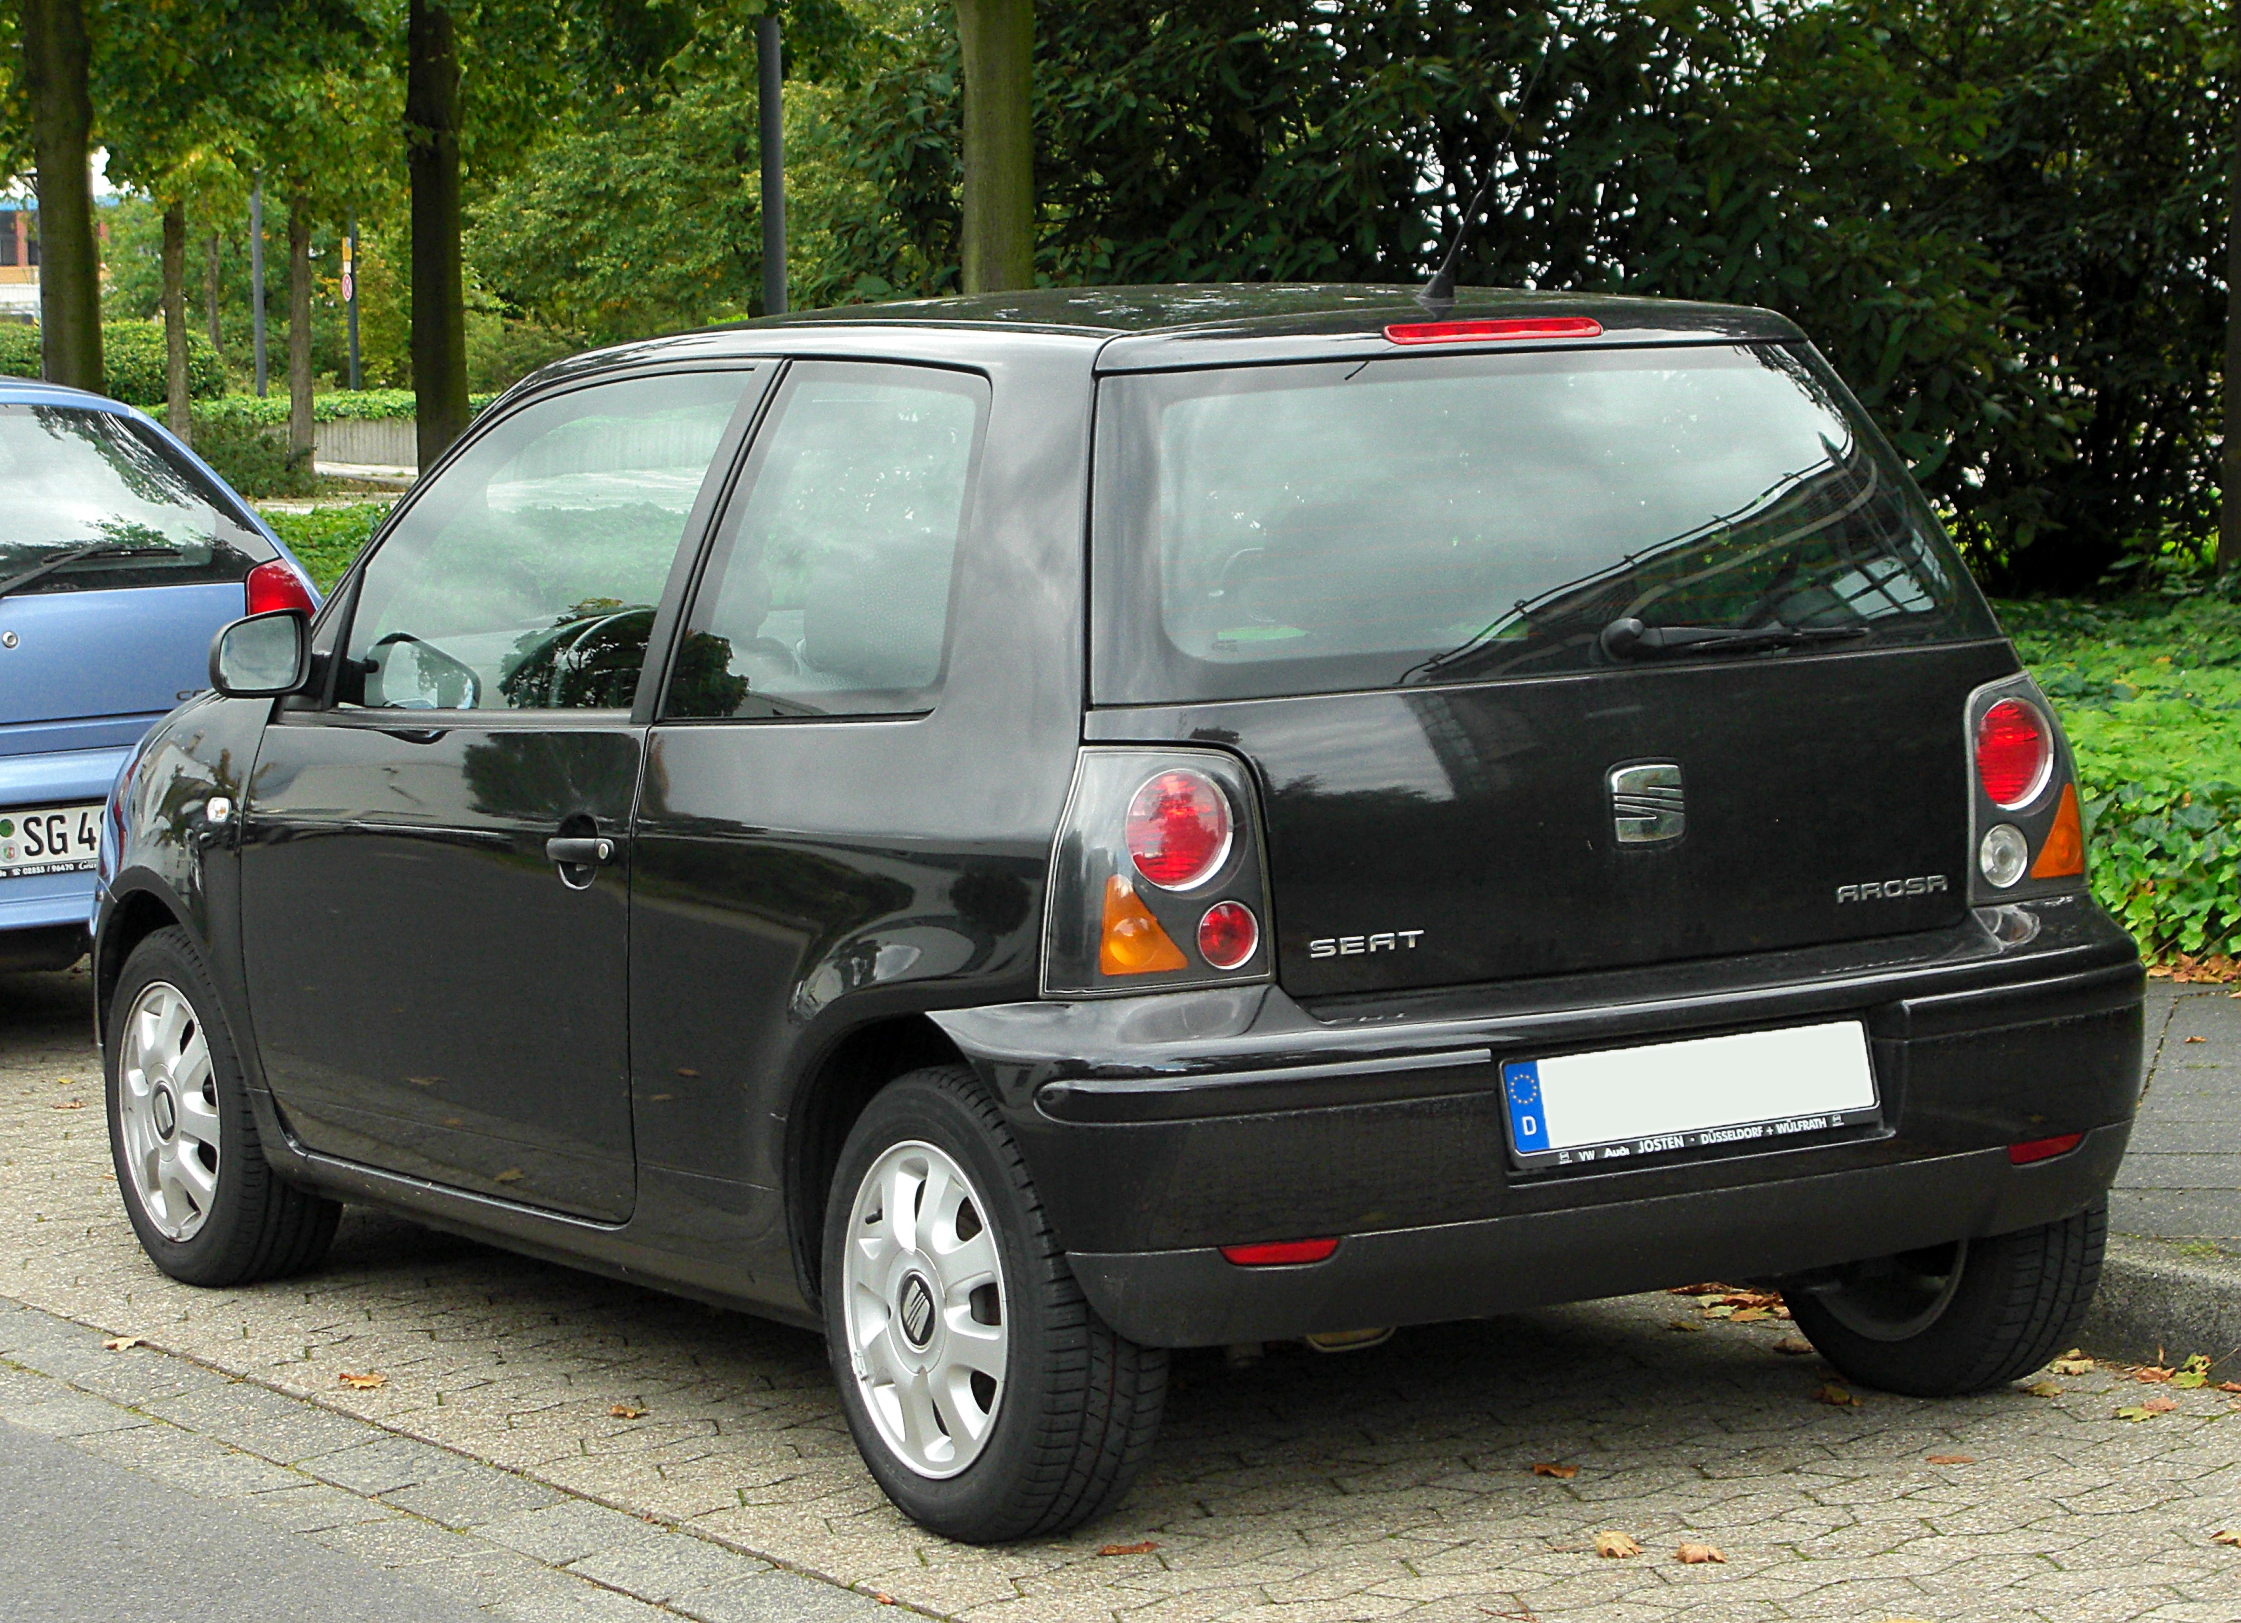 seat arosa review and photos. Black Bedroom Furniture Sets. Home Design Ideas